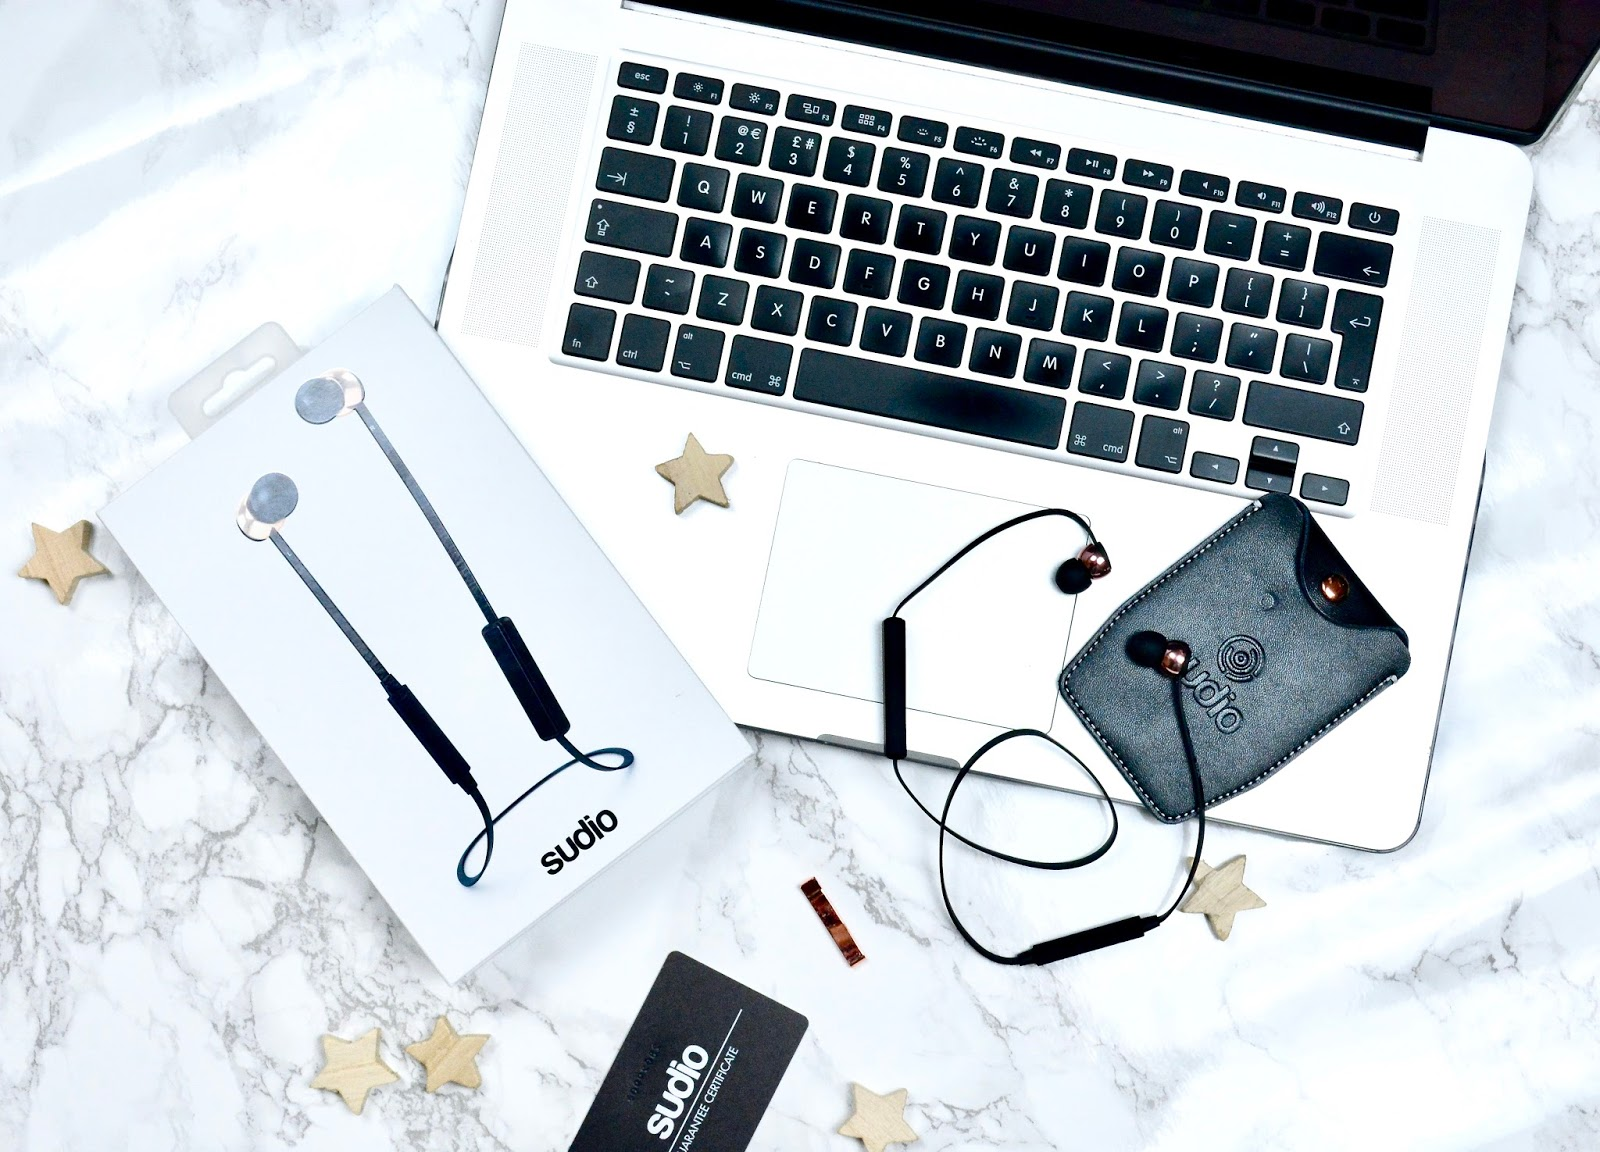 Earphones, Headphones,Sudio Vasa BLÅ Earphones, iPhone, Music, Sudio Earphones, Christmas, Christmas Gift Guide, Sound, Lifestyle,